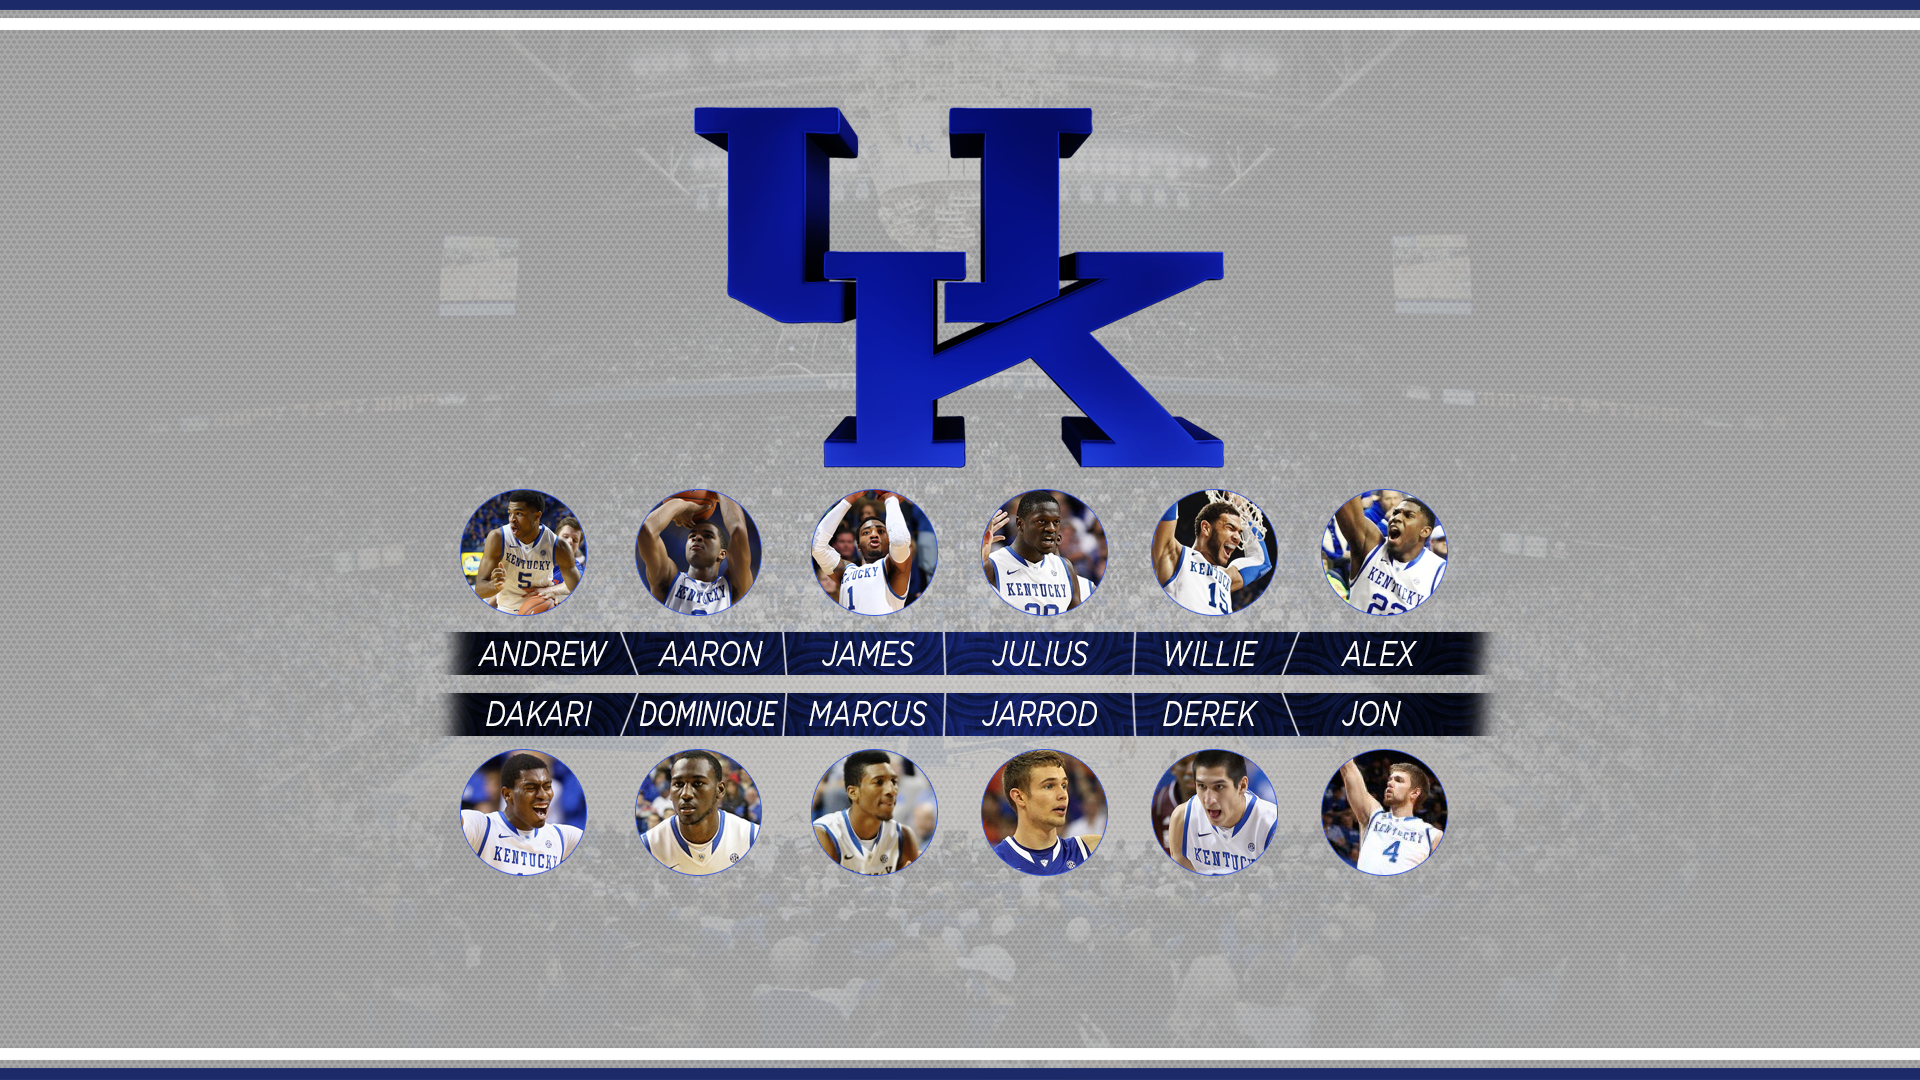 2013 2014 Kentucky Wildcats Desktop Wallpaper by BranLyle on 1920x1080